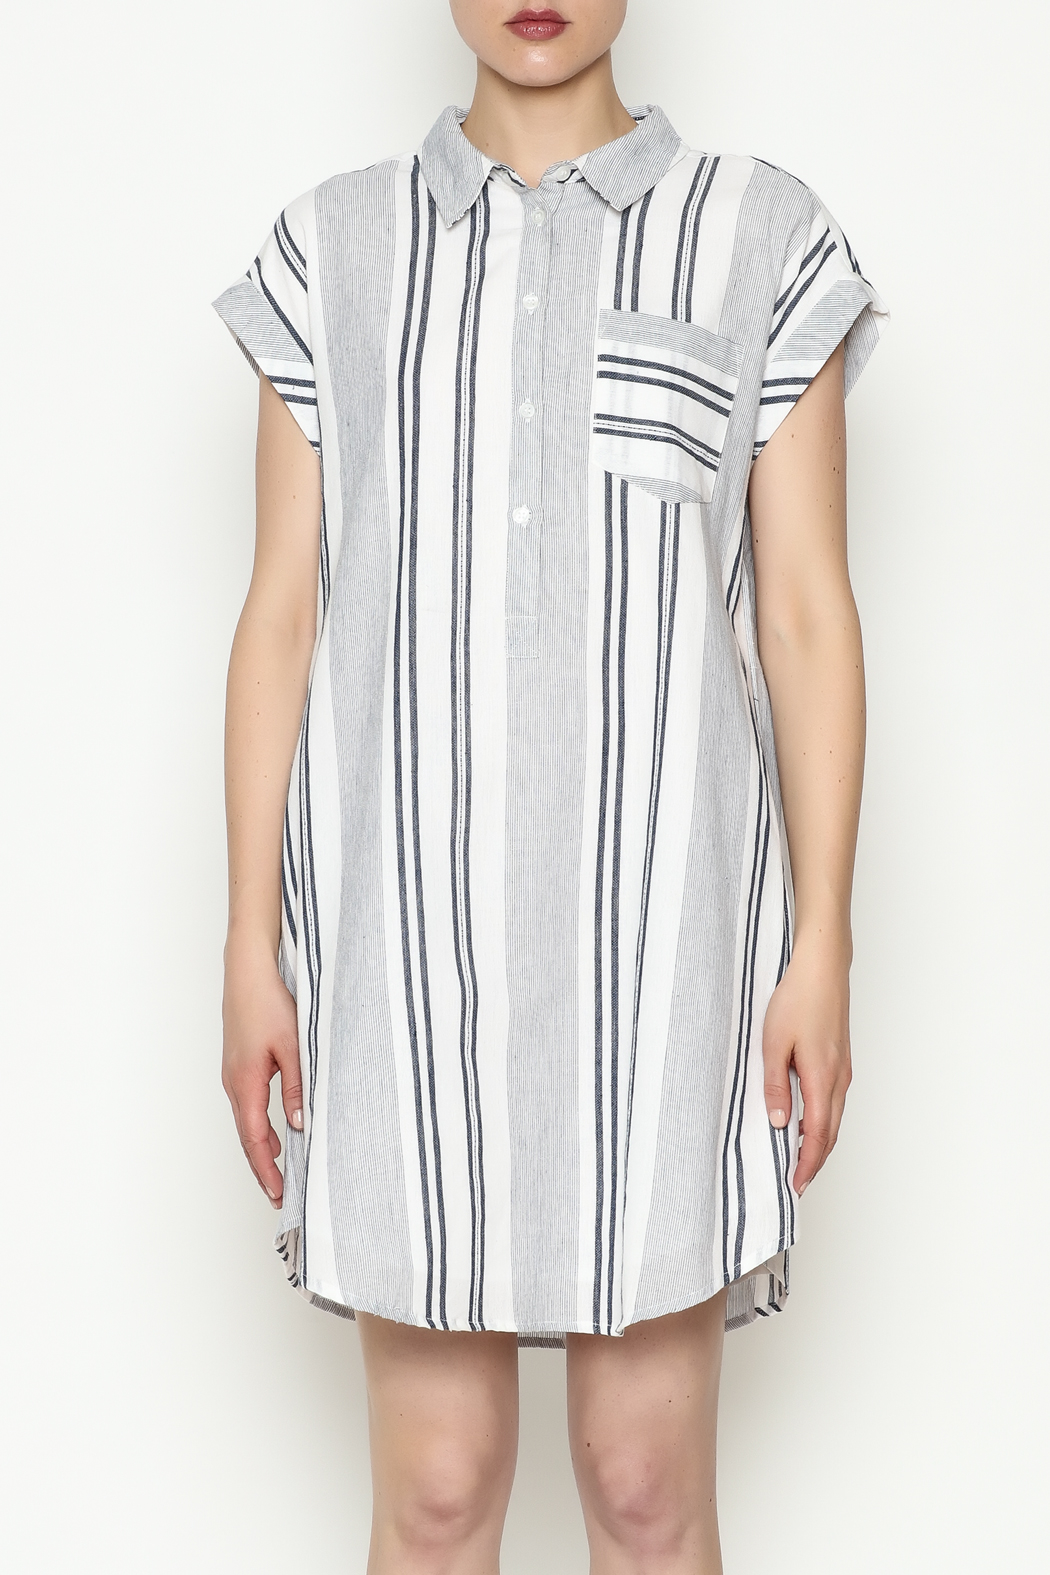 Olive & Oak Multicolored Stripe Dress - Front Full Image